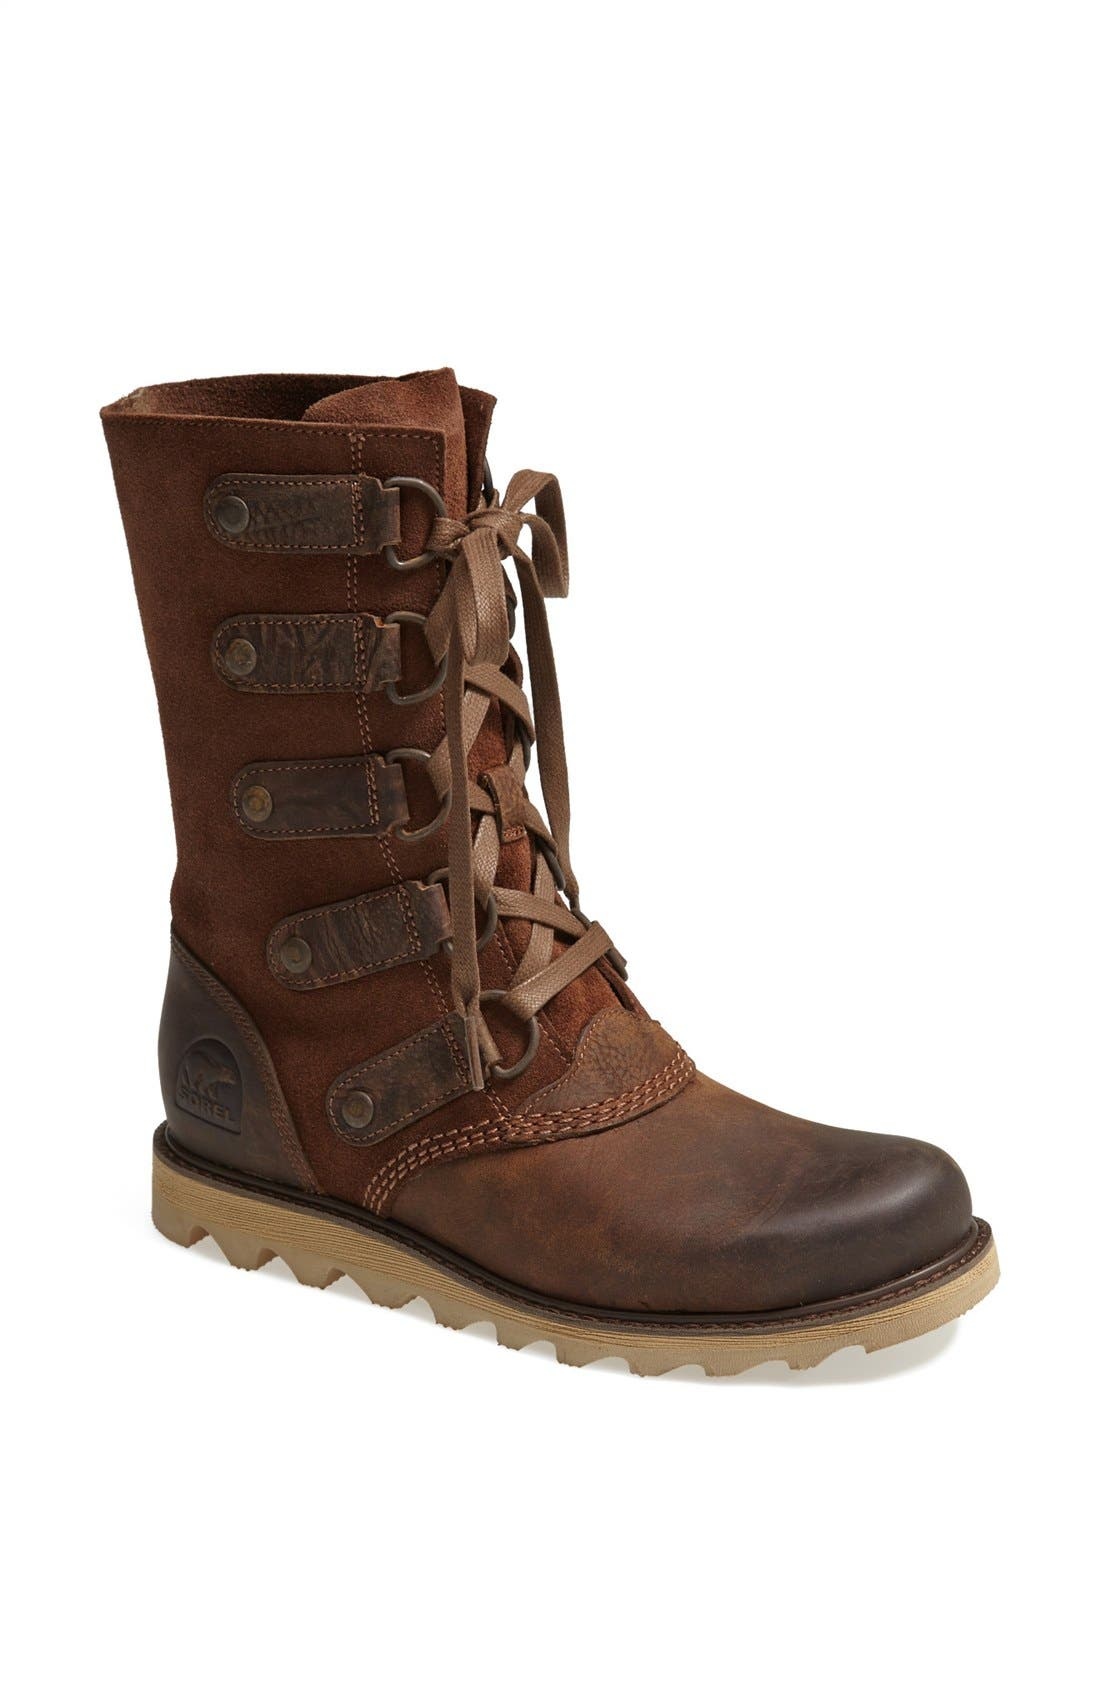 SOREL 'Scotia' Lace-Up Waterproof Leather Boot, Main, color, 202